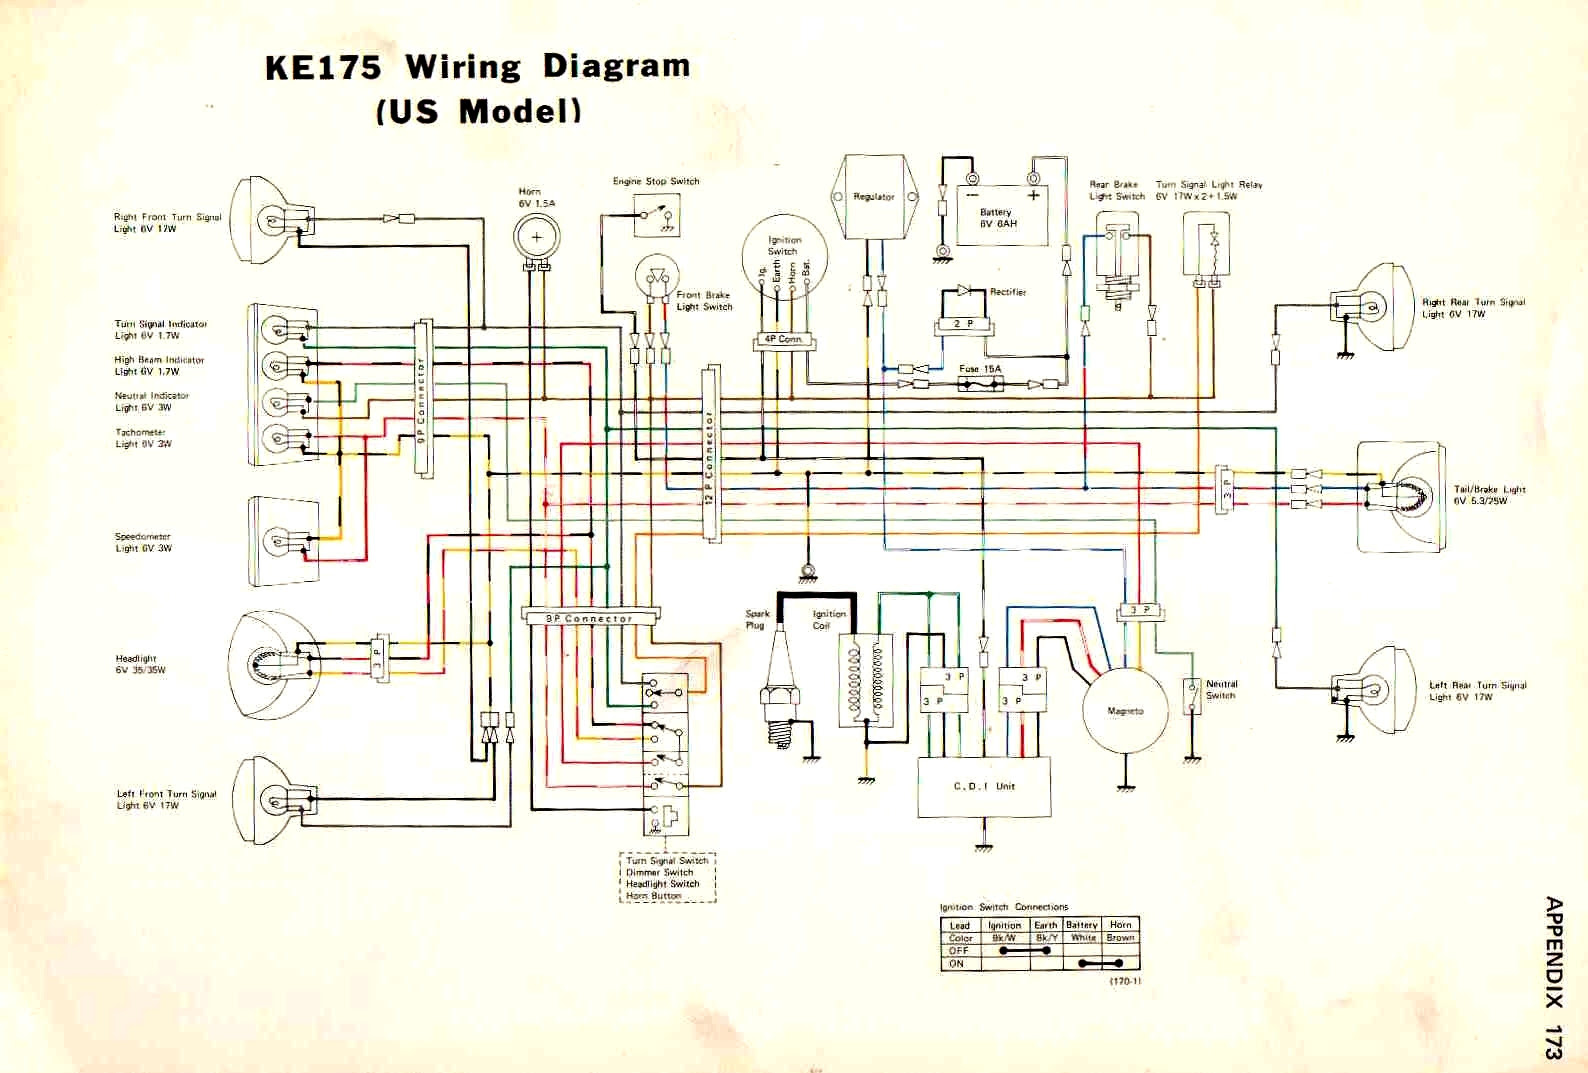 Kawasaki Wind 125 Cdi Wiring Diagram